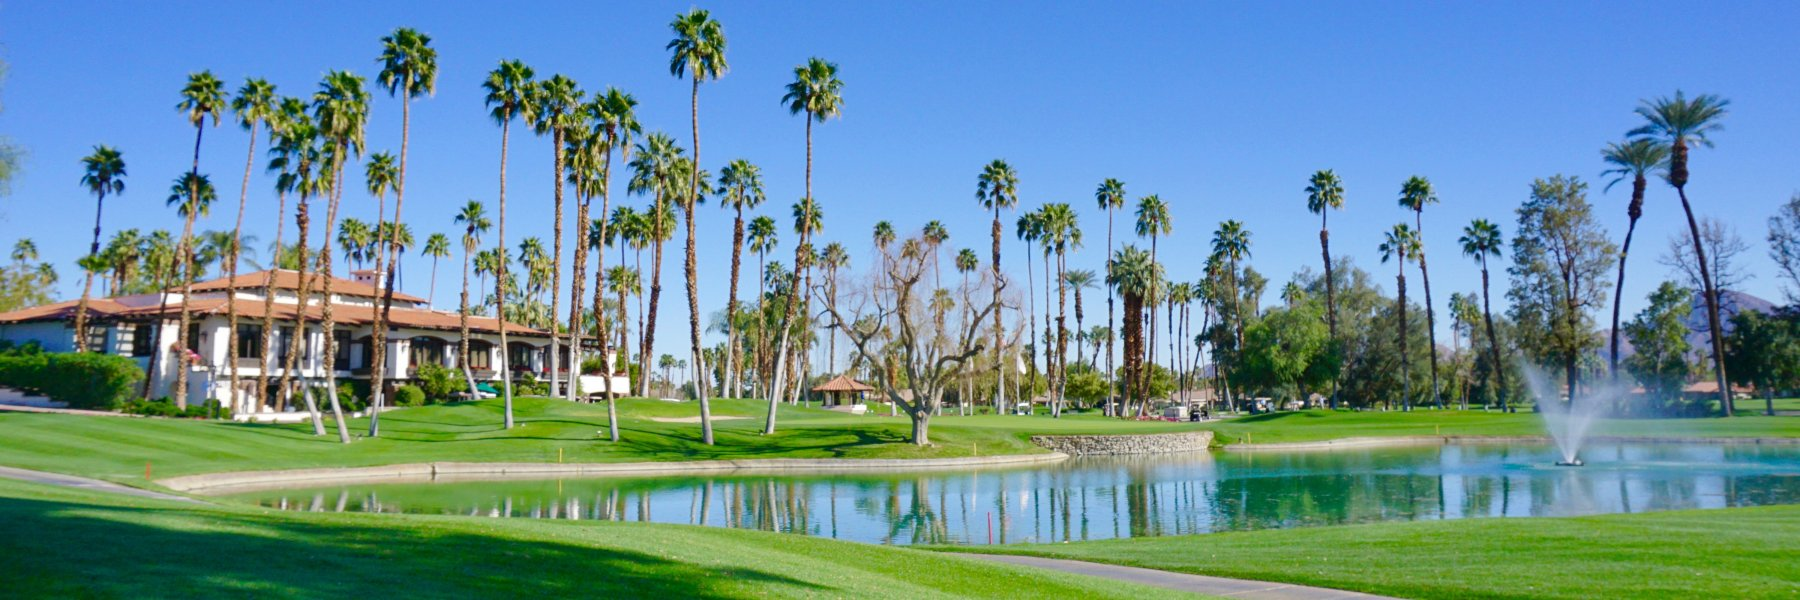 Monterey Country Club is a community of homes in Palm Desert California